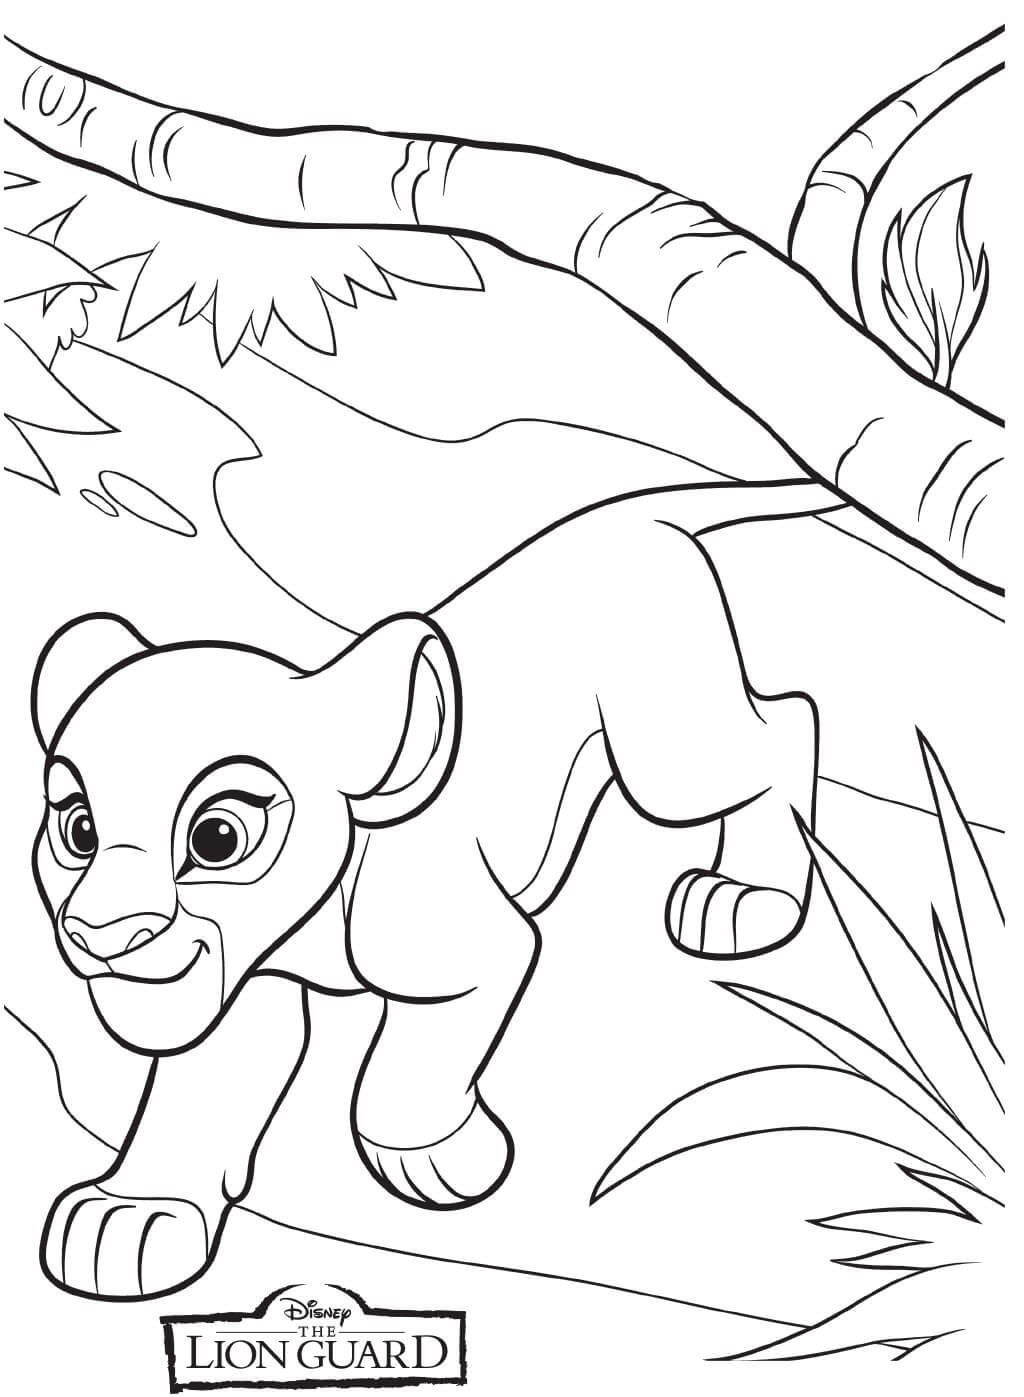 20 Printable The Lion Guard Coloring Pages